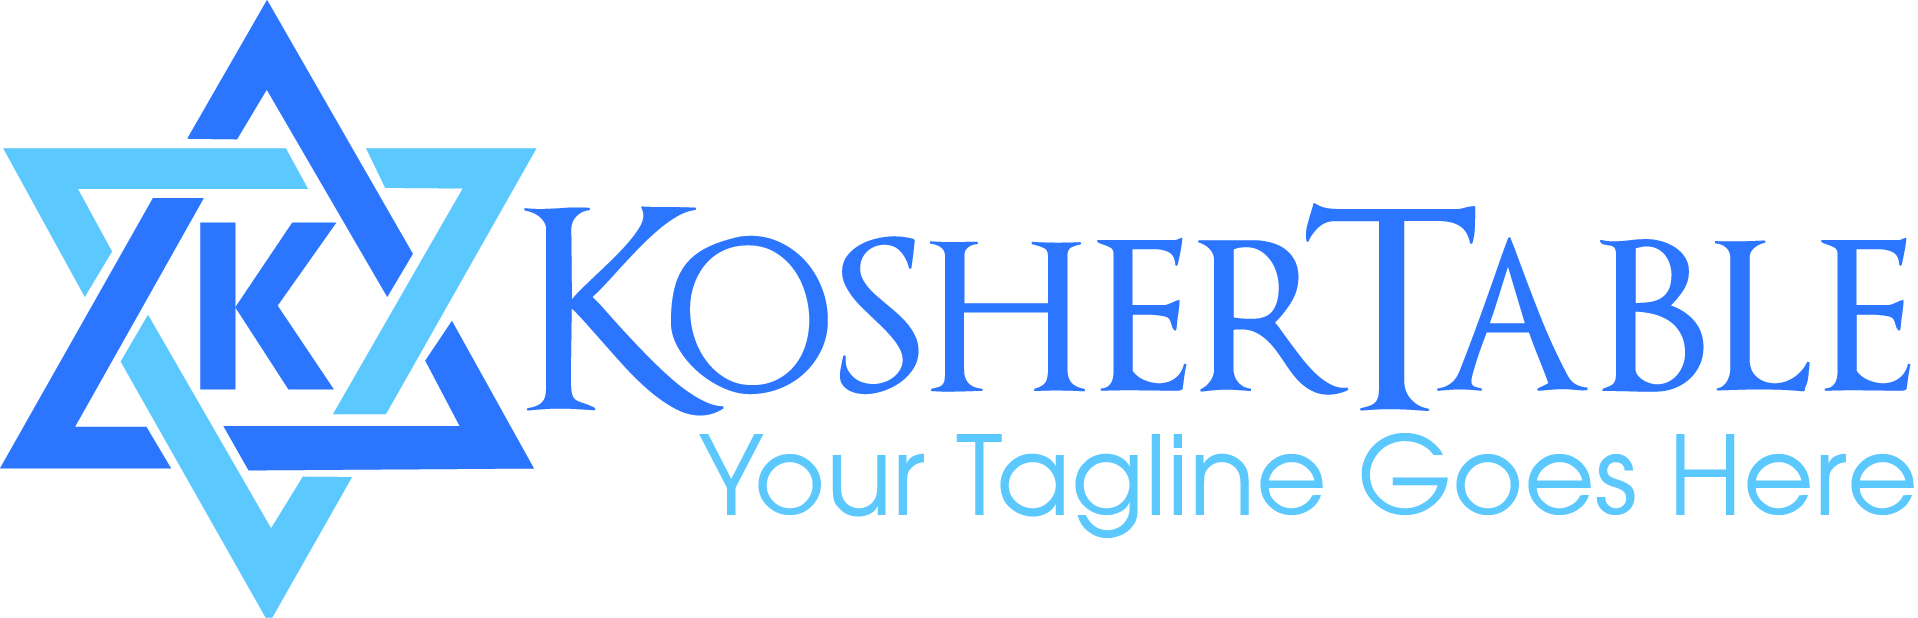 KosherTable